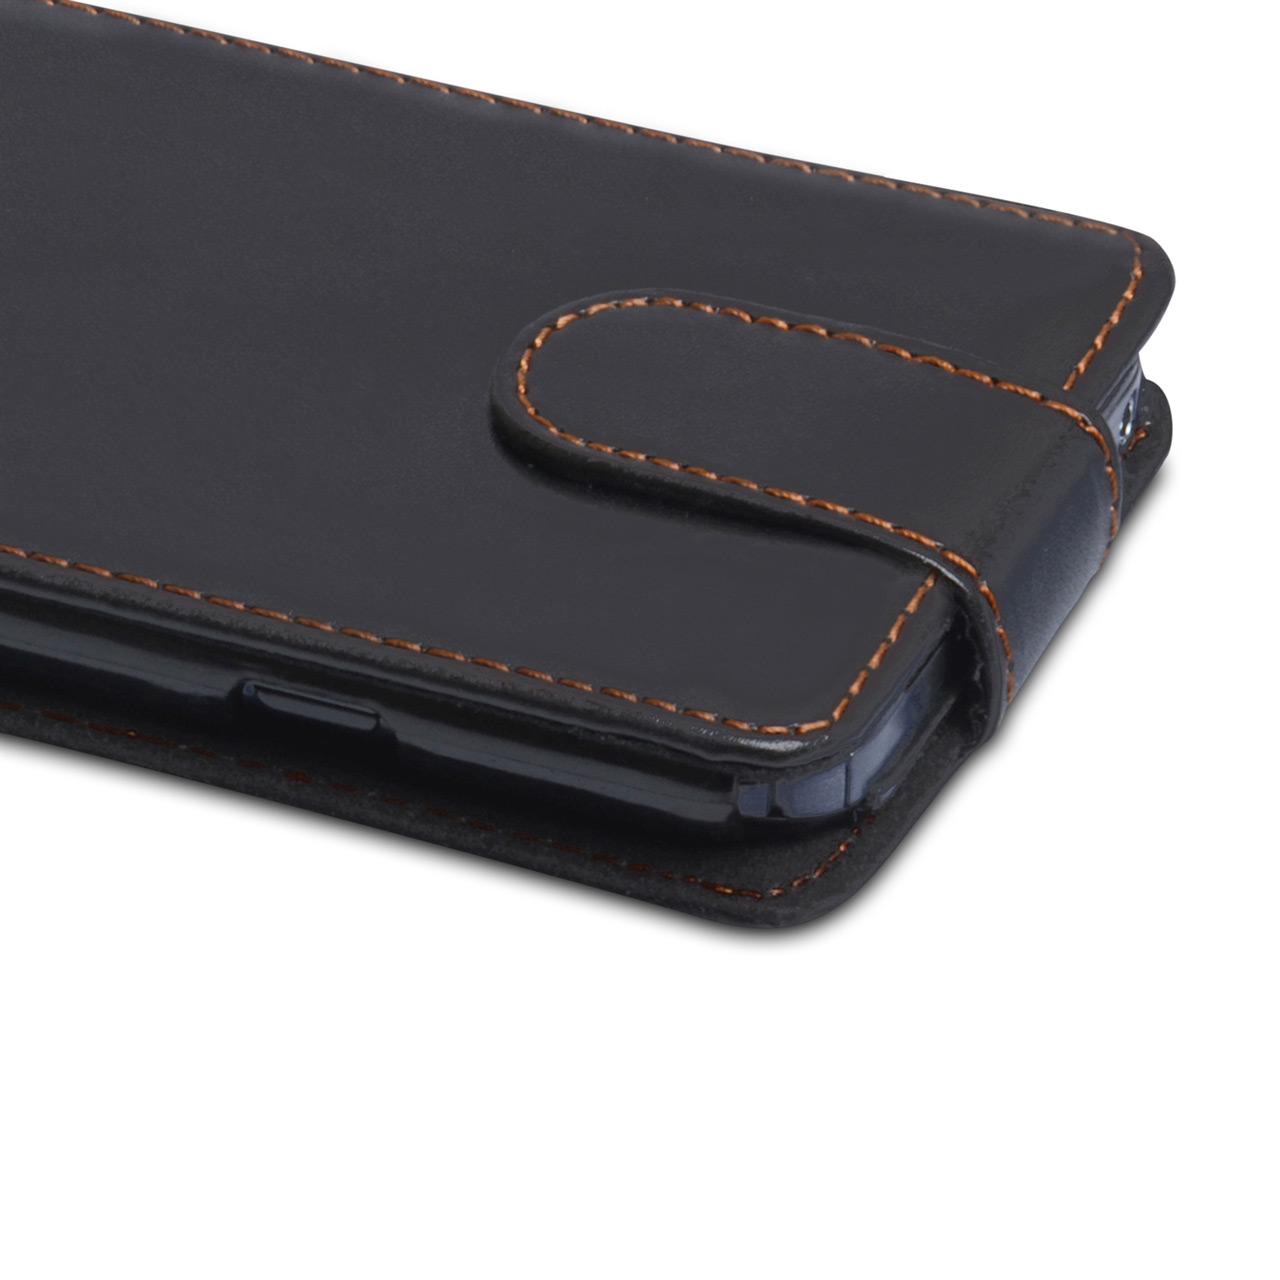 YouSave Accessories LG G Pro Leather Effect Flip Case - Black